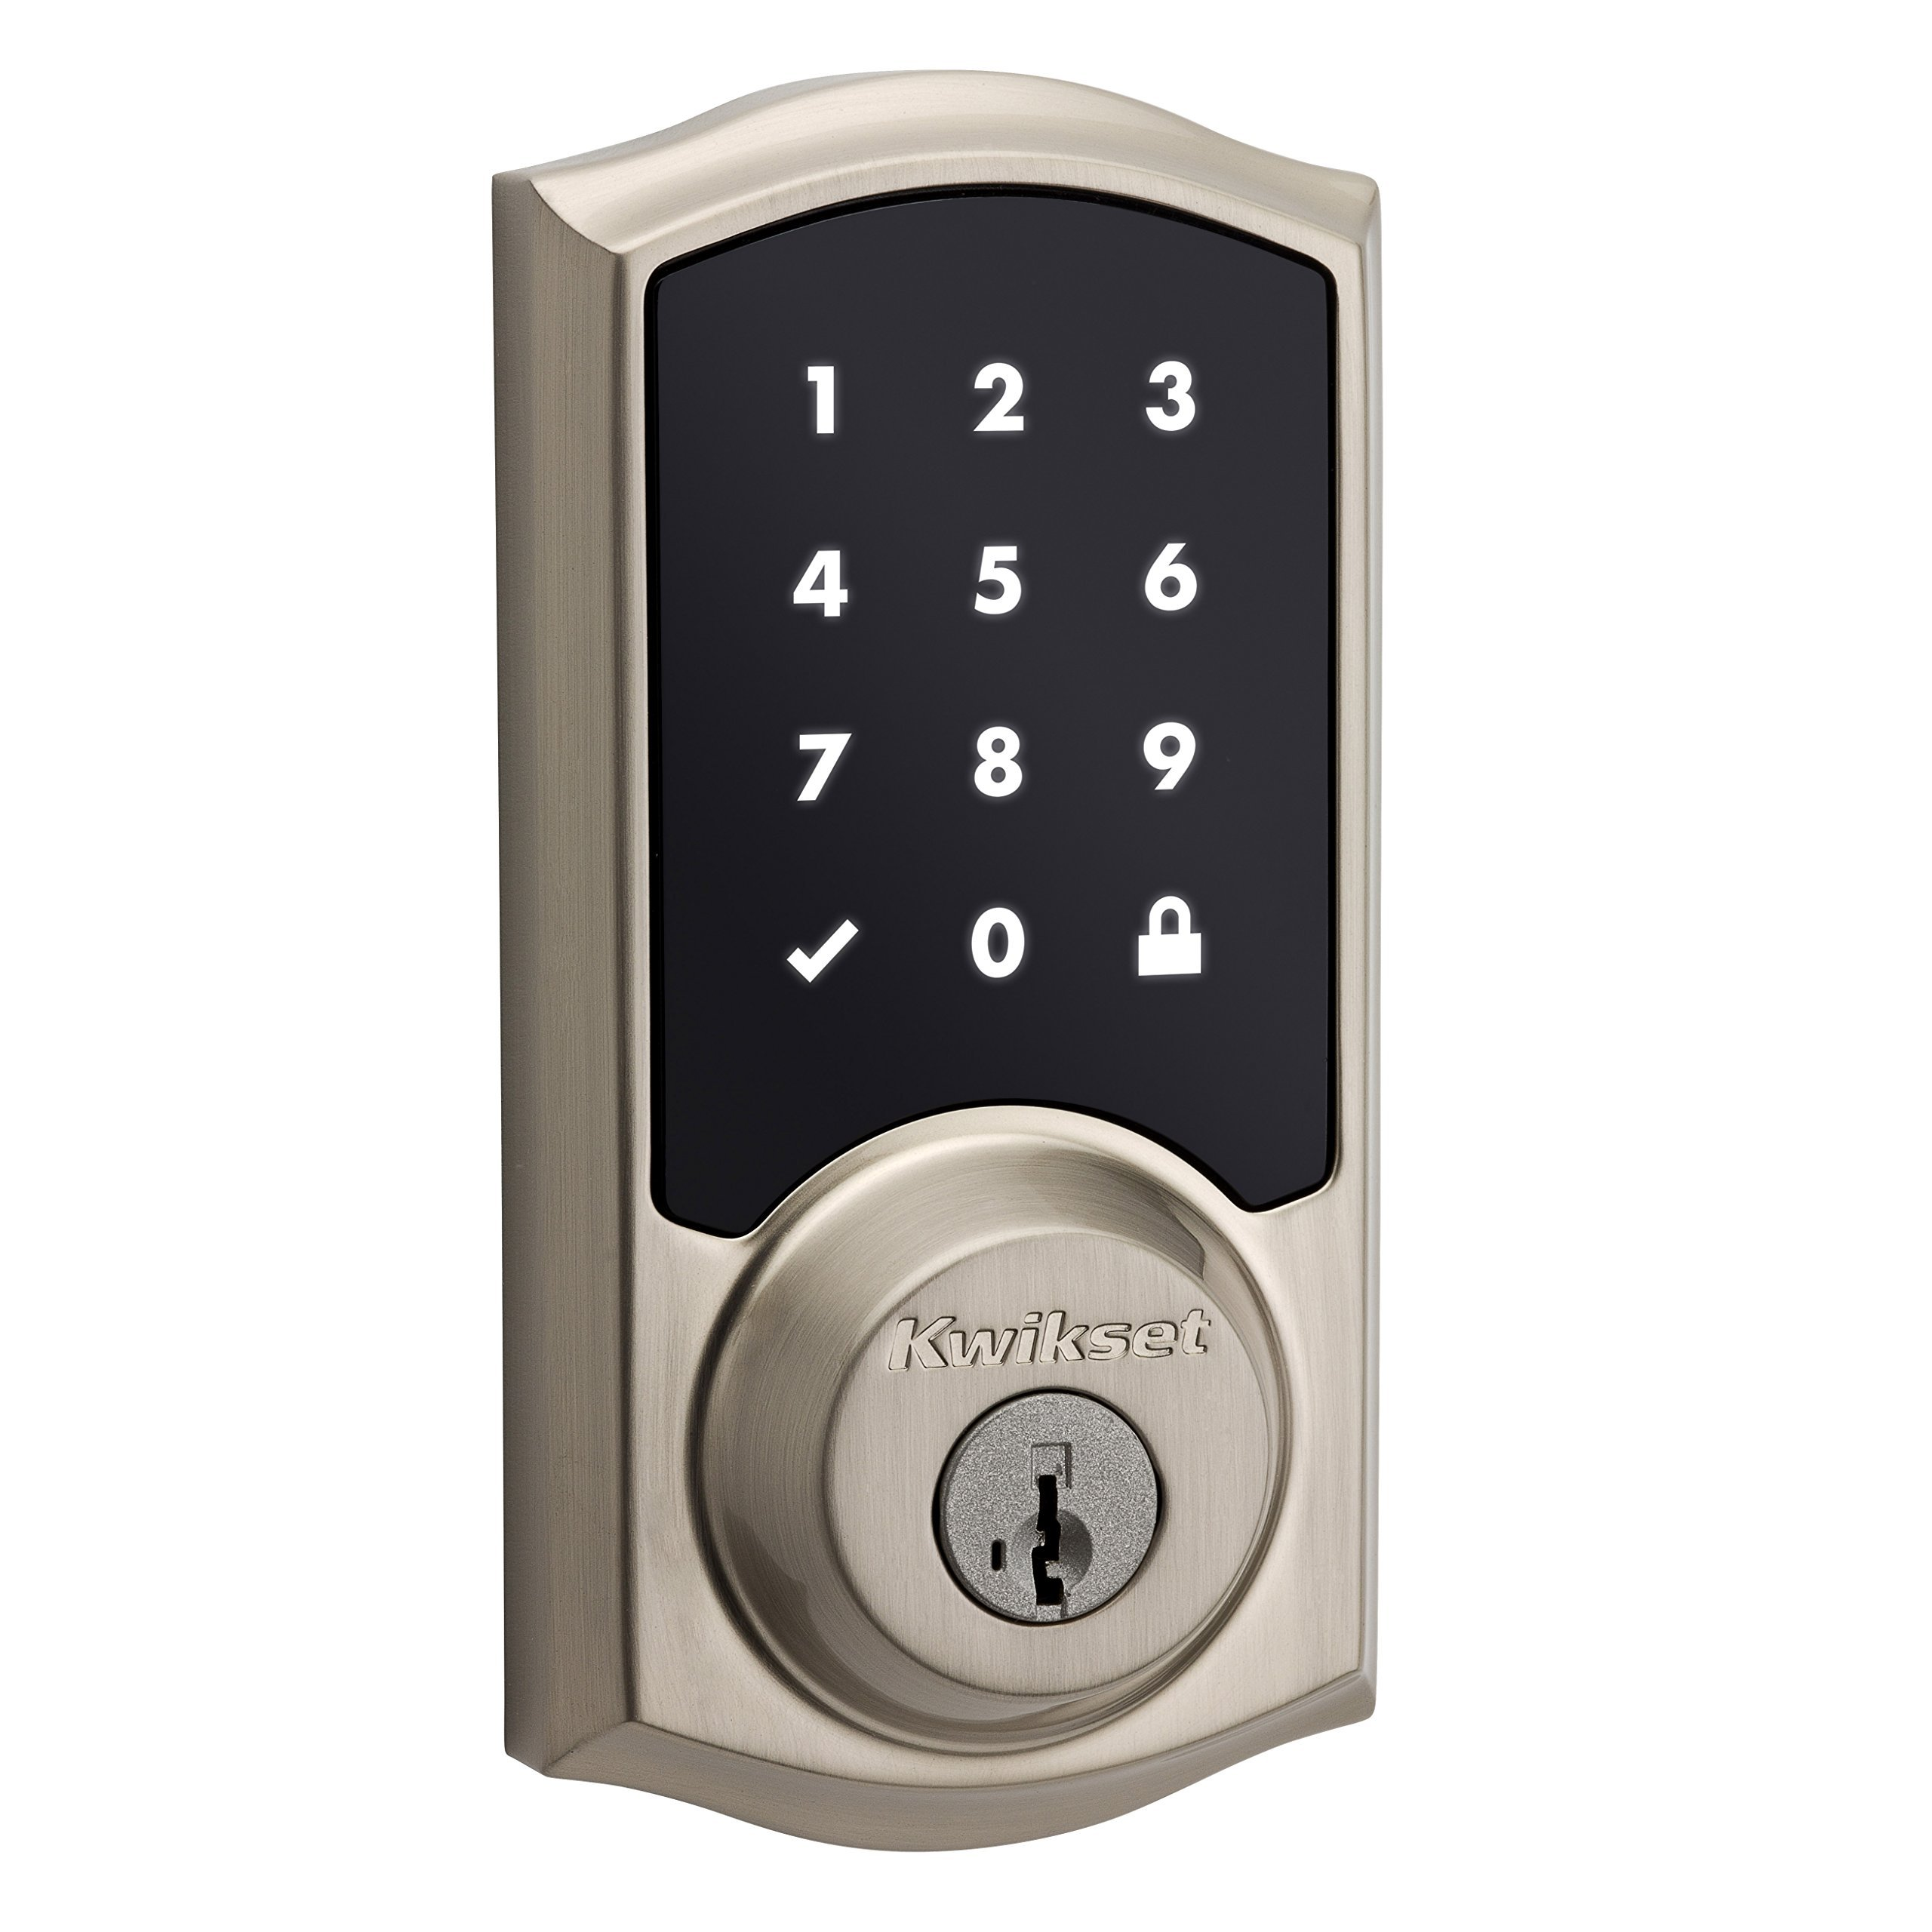 Kwikset 99160-008 SmartCode ZigBee Touchscreen Smart Lock works with Echo Plus & Alexa, featuring SmartKey, Satin Nickel by Kwikset (Image #2)